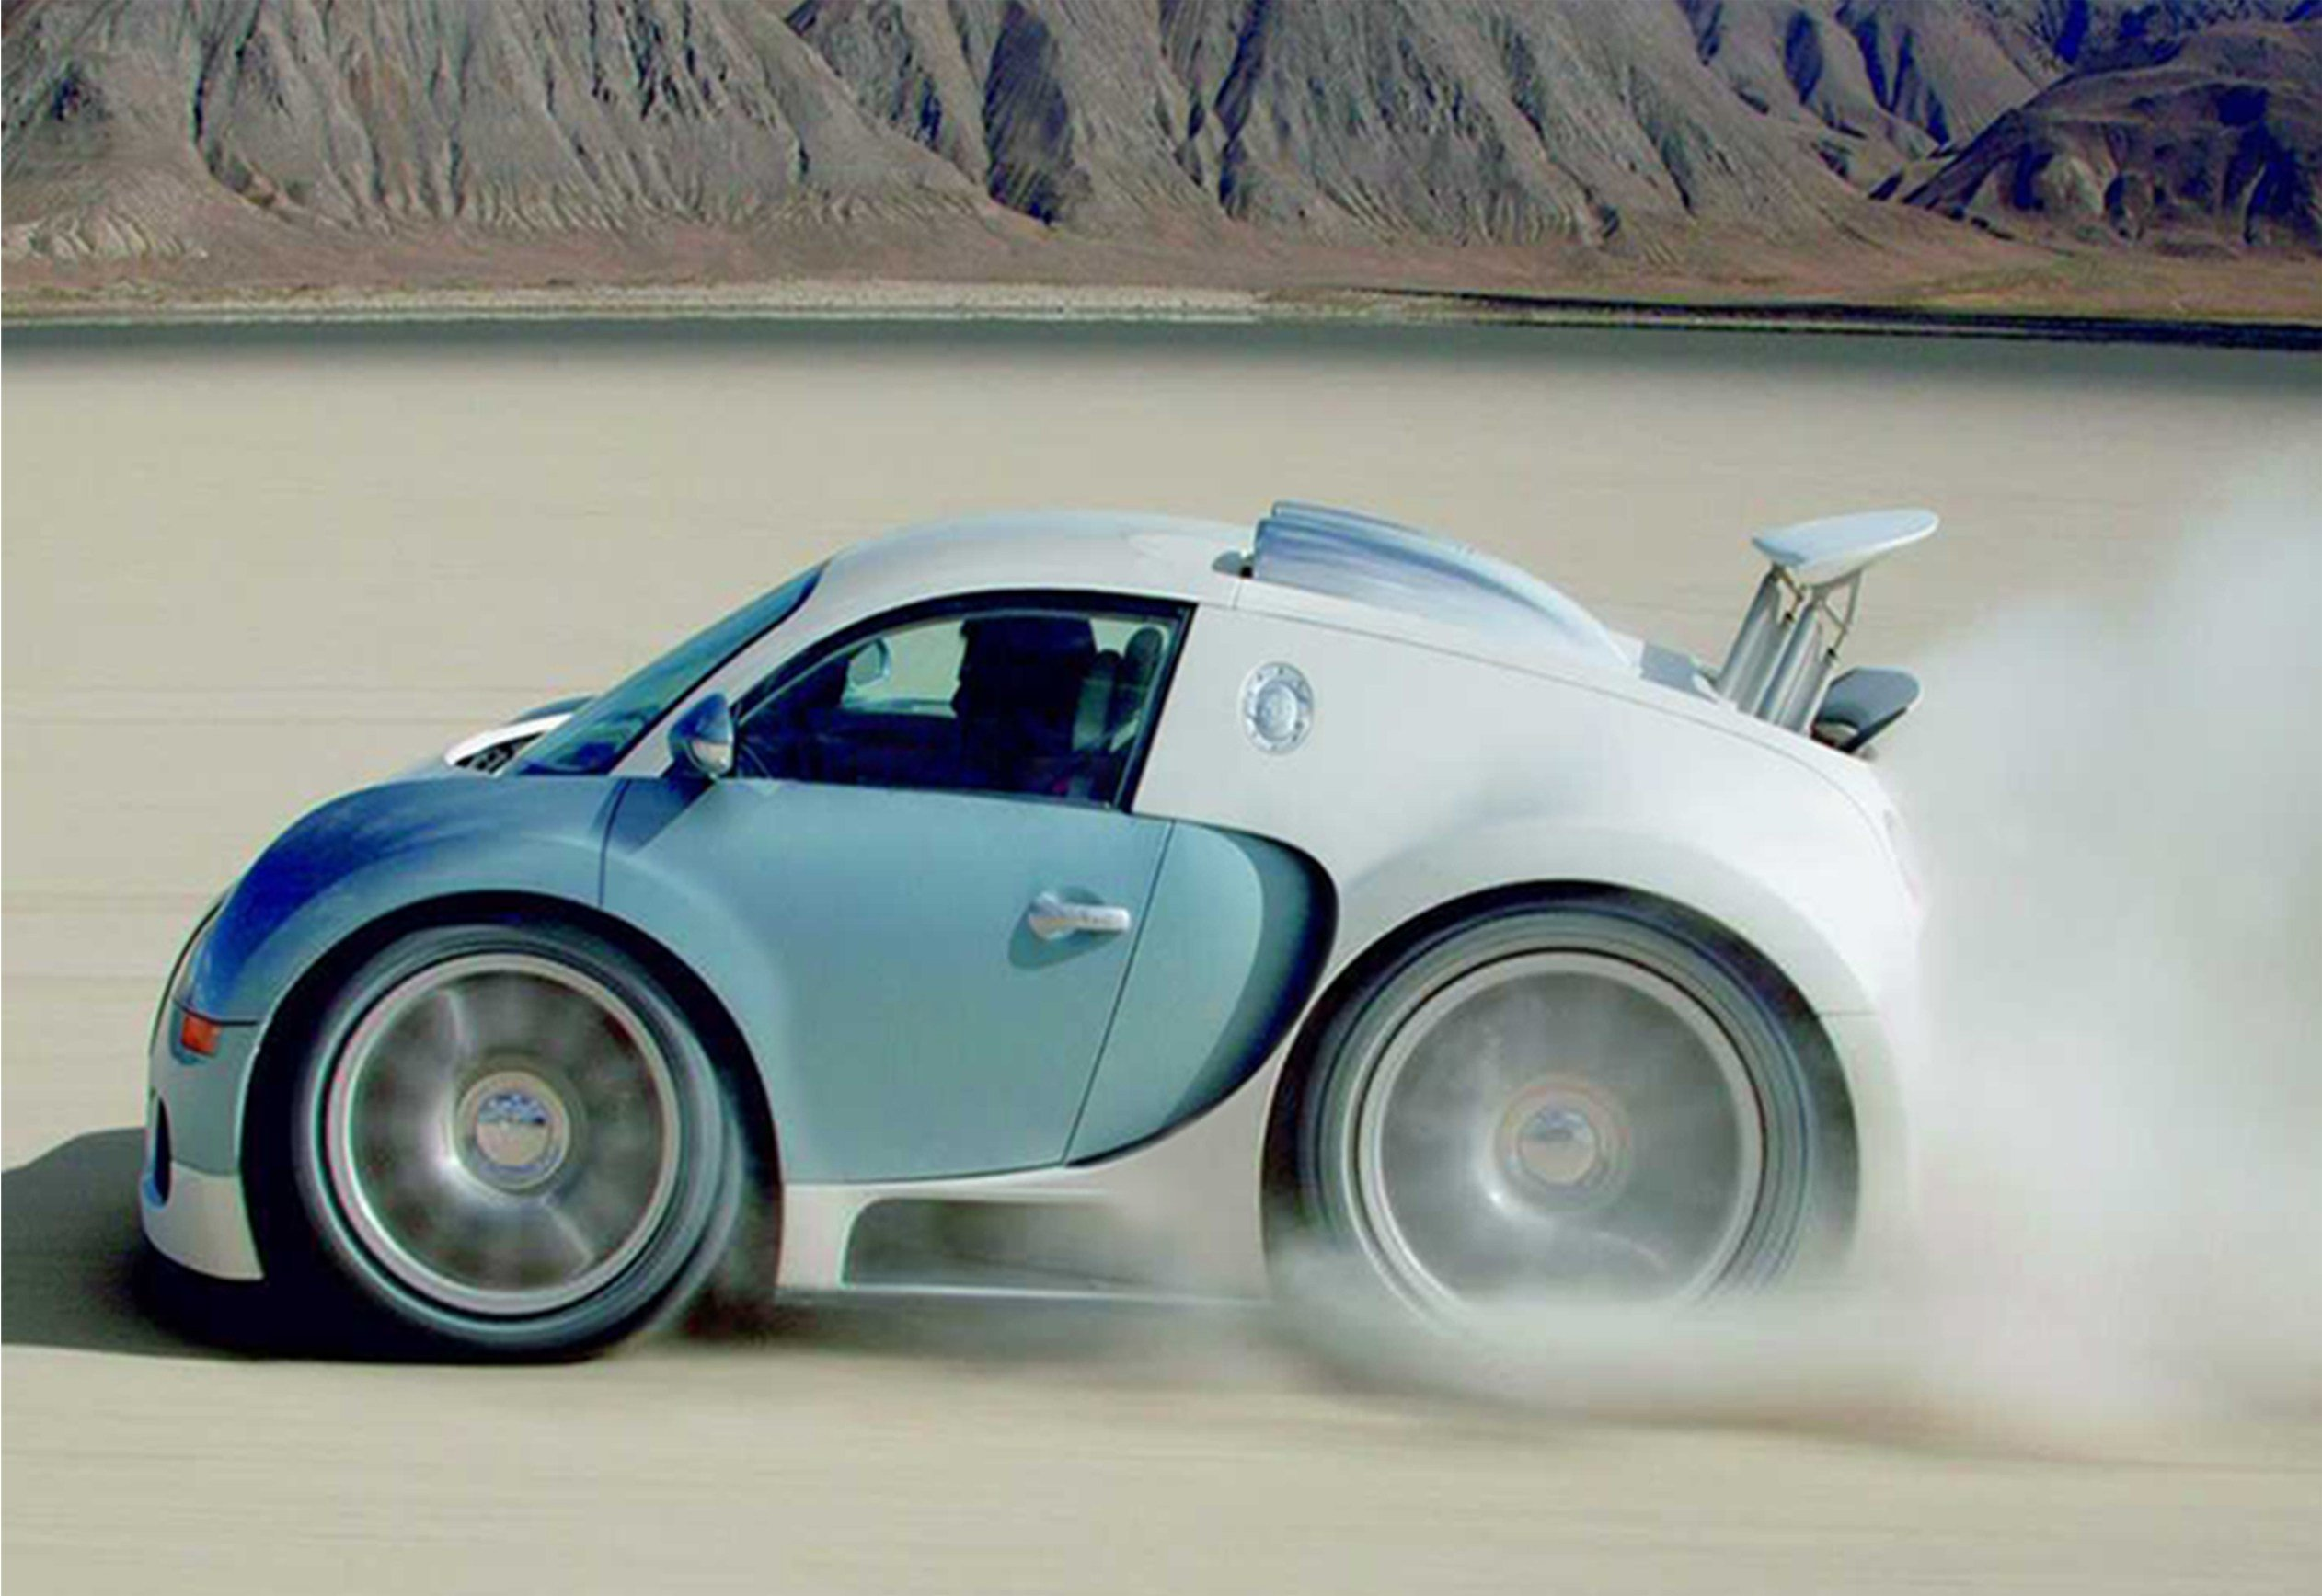 New Bugatti Veyron 10373 Picture By Solkee In Album 911 On This Month